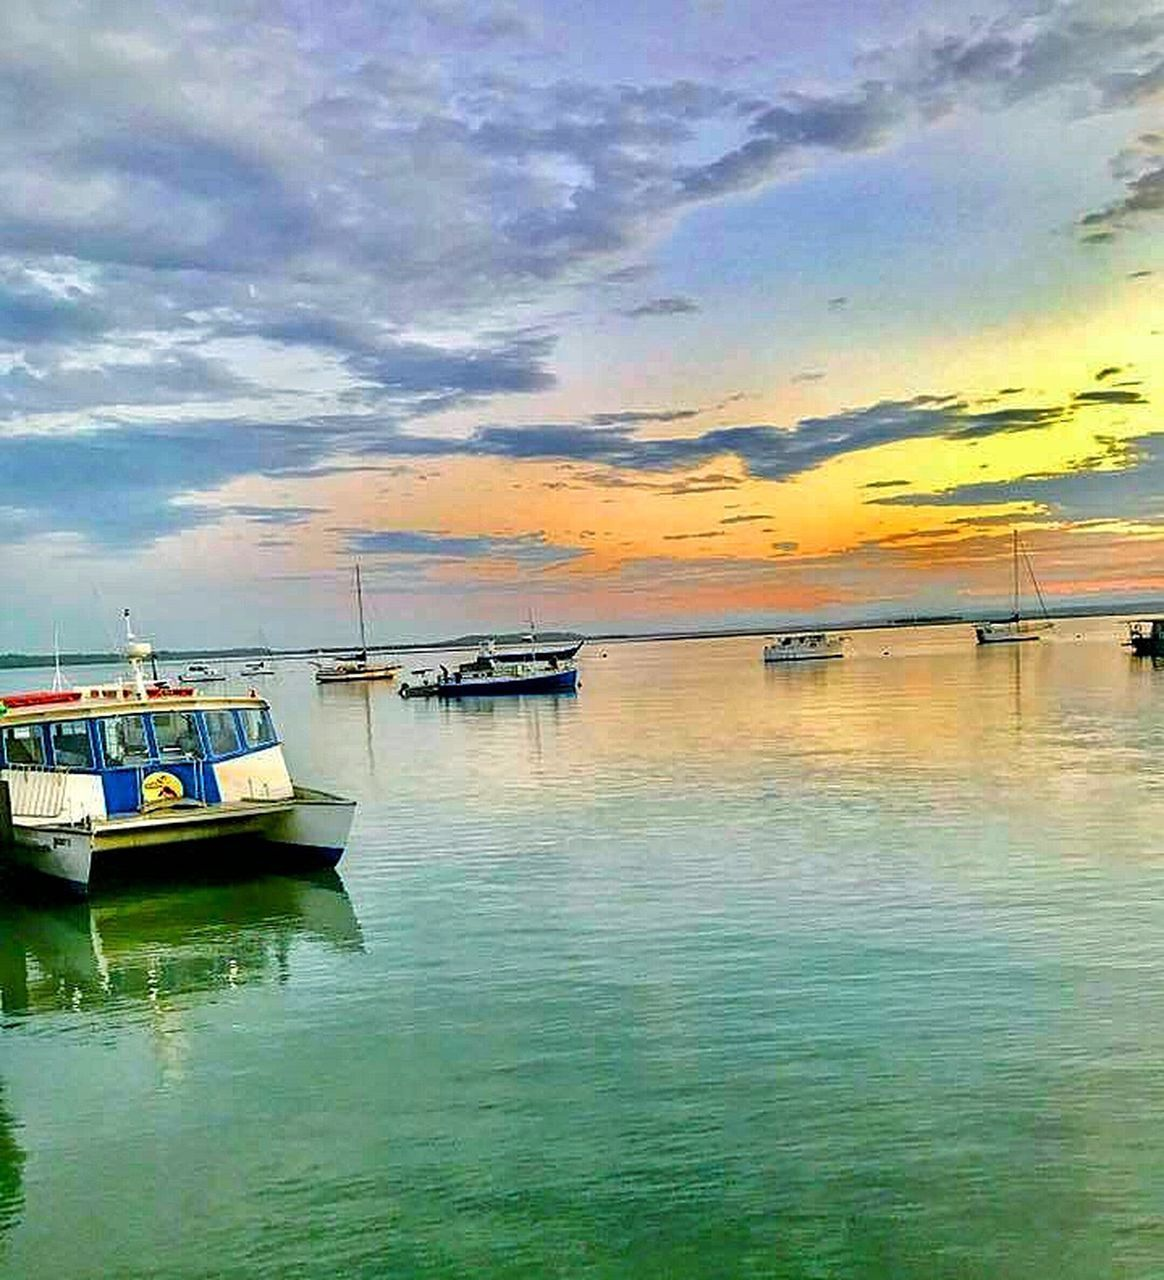 nautical vessel, transportation, water, mode of transport, moored, sky, reflection, cloud - sky, nature, scenics, boat, sea, beauty in nature, tranquility, tranquil scene, no people, sunset, outdoors, waterfront, outrigger, day, horizon over water